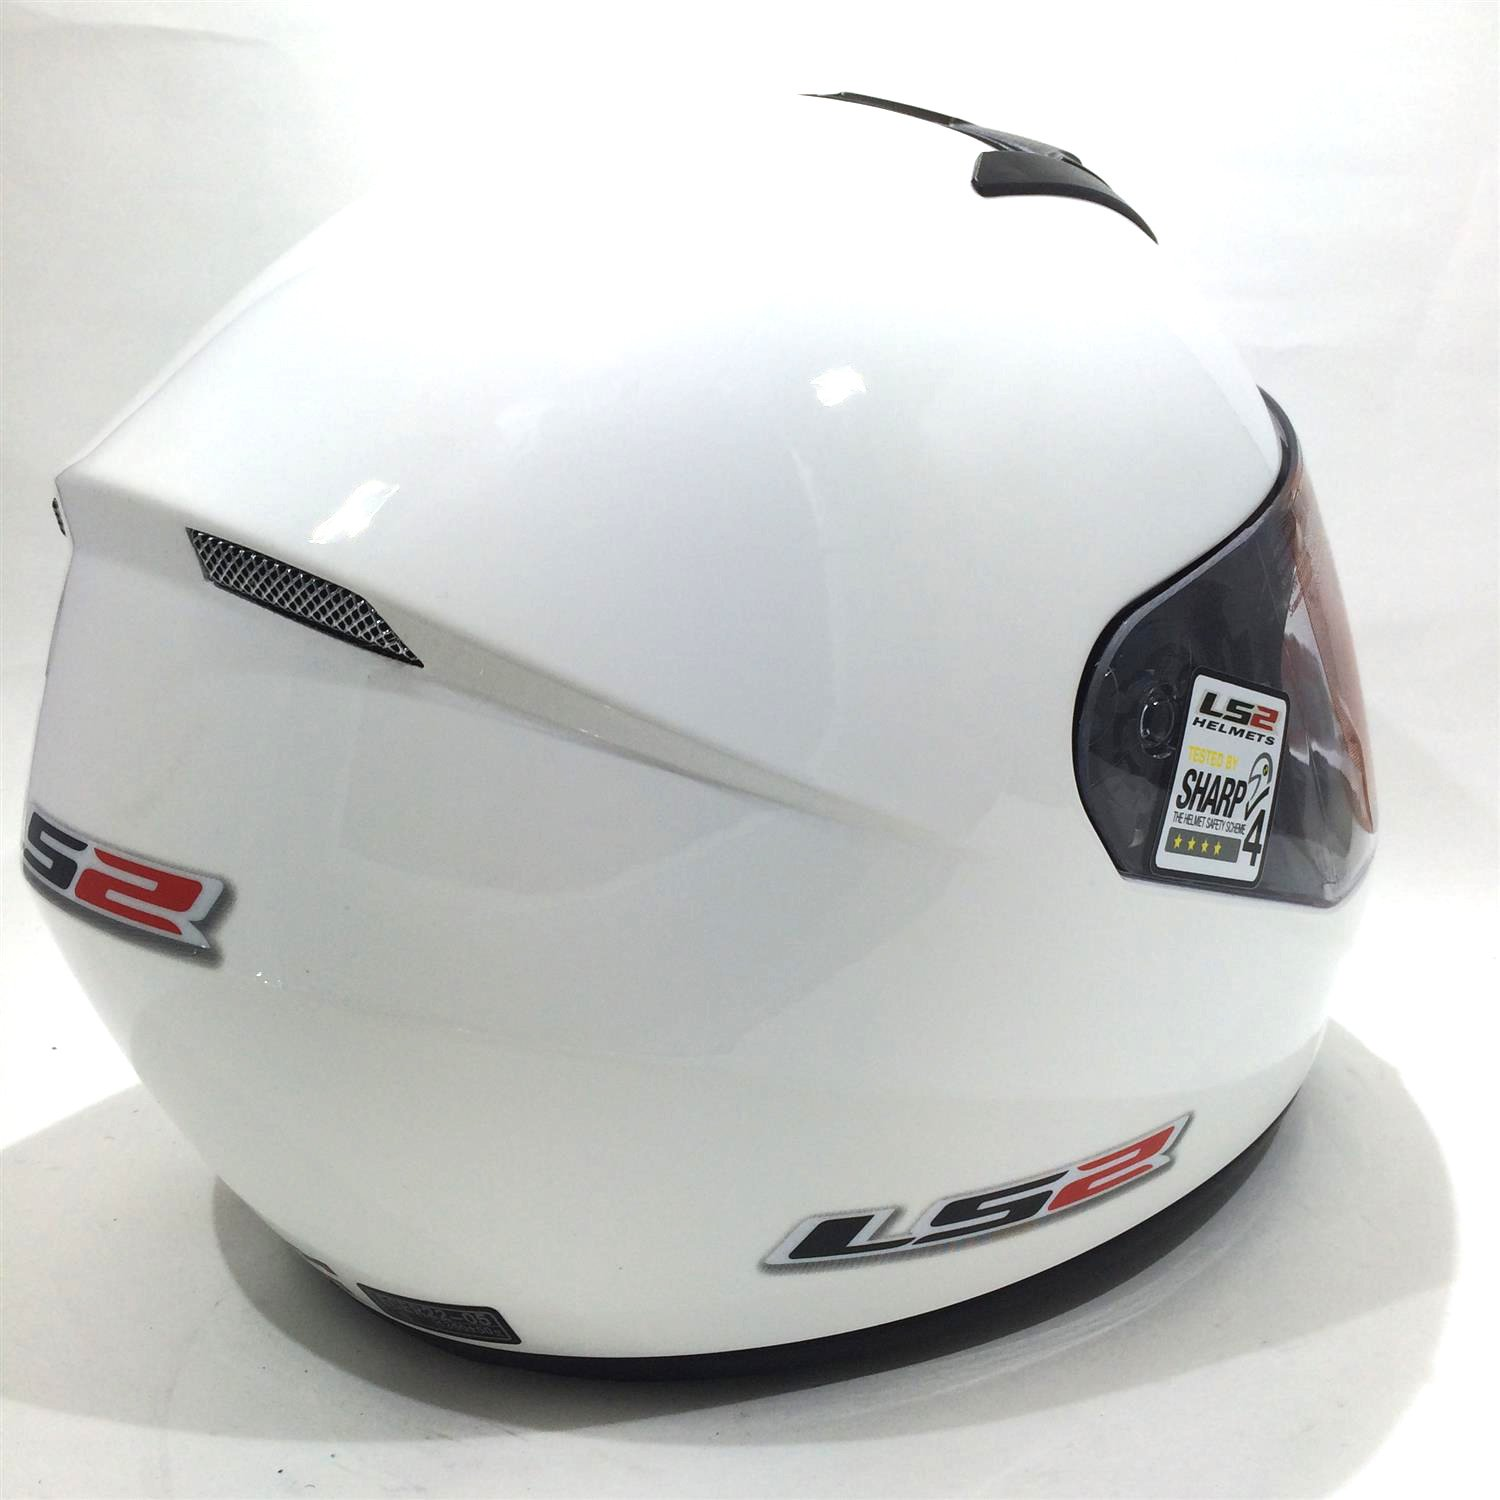 Amazon.es: Casco de la motocicleta LS2 FF351 Mono casco integral (L, Blanco)